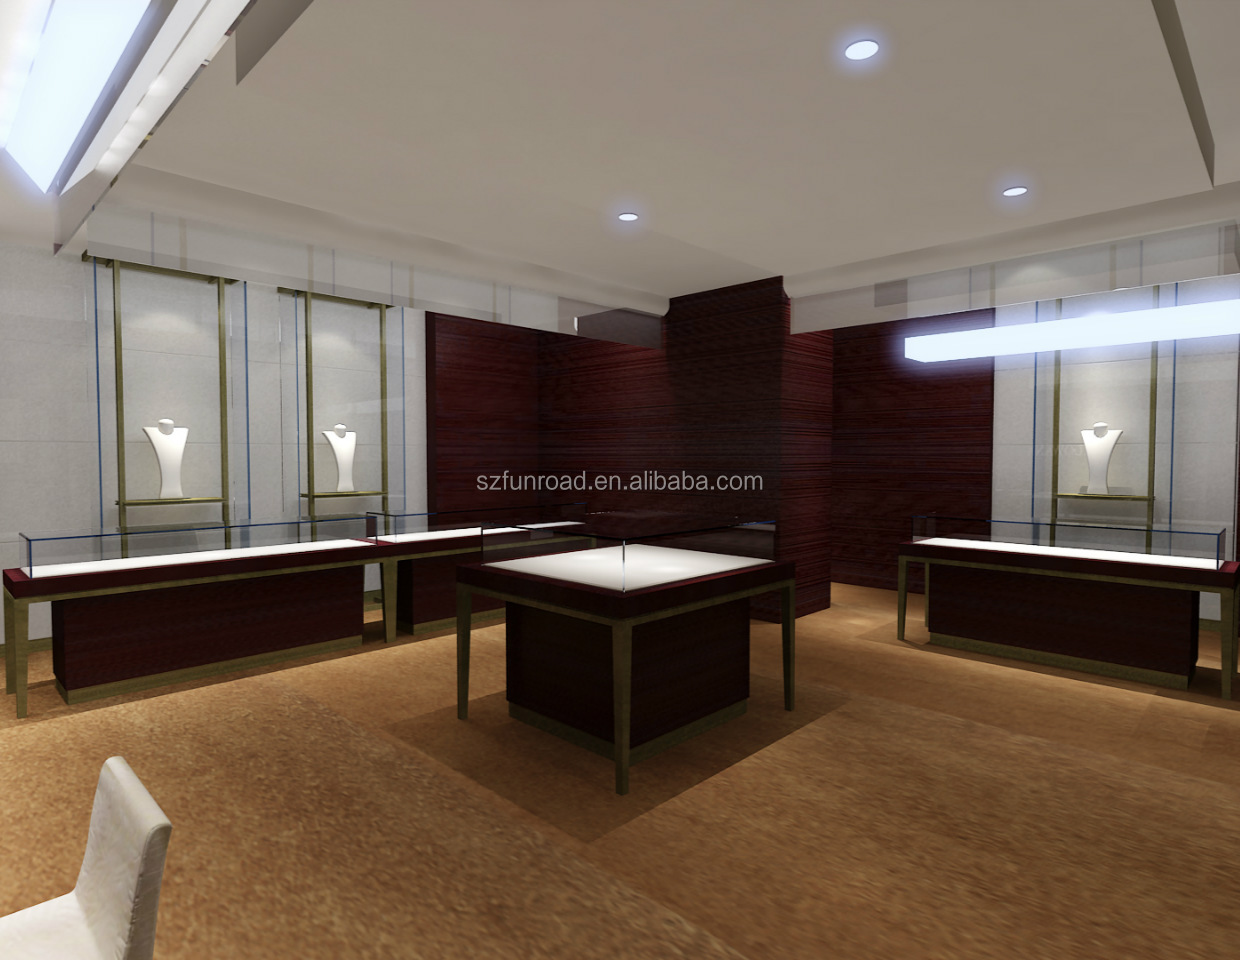 2018 Chinese manufacturer jewelry store display jewelry shop showcase design